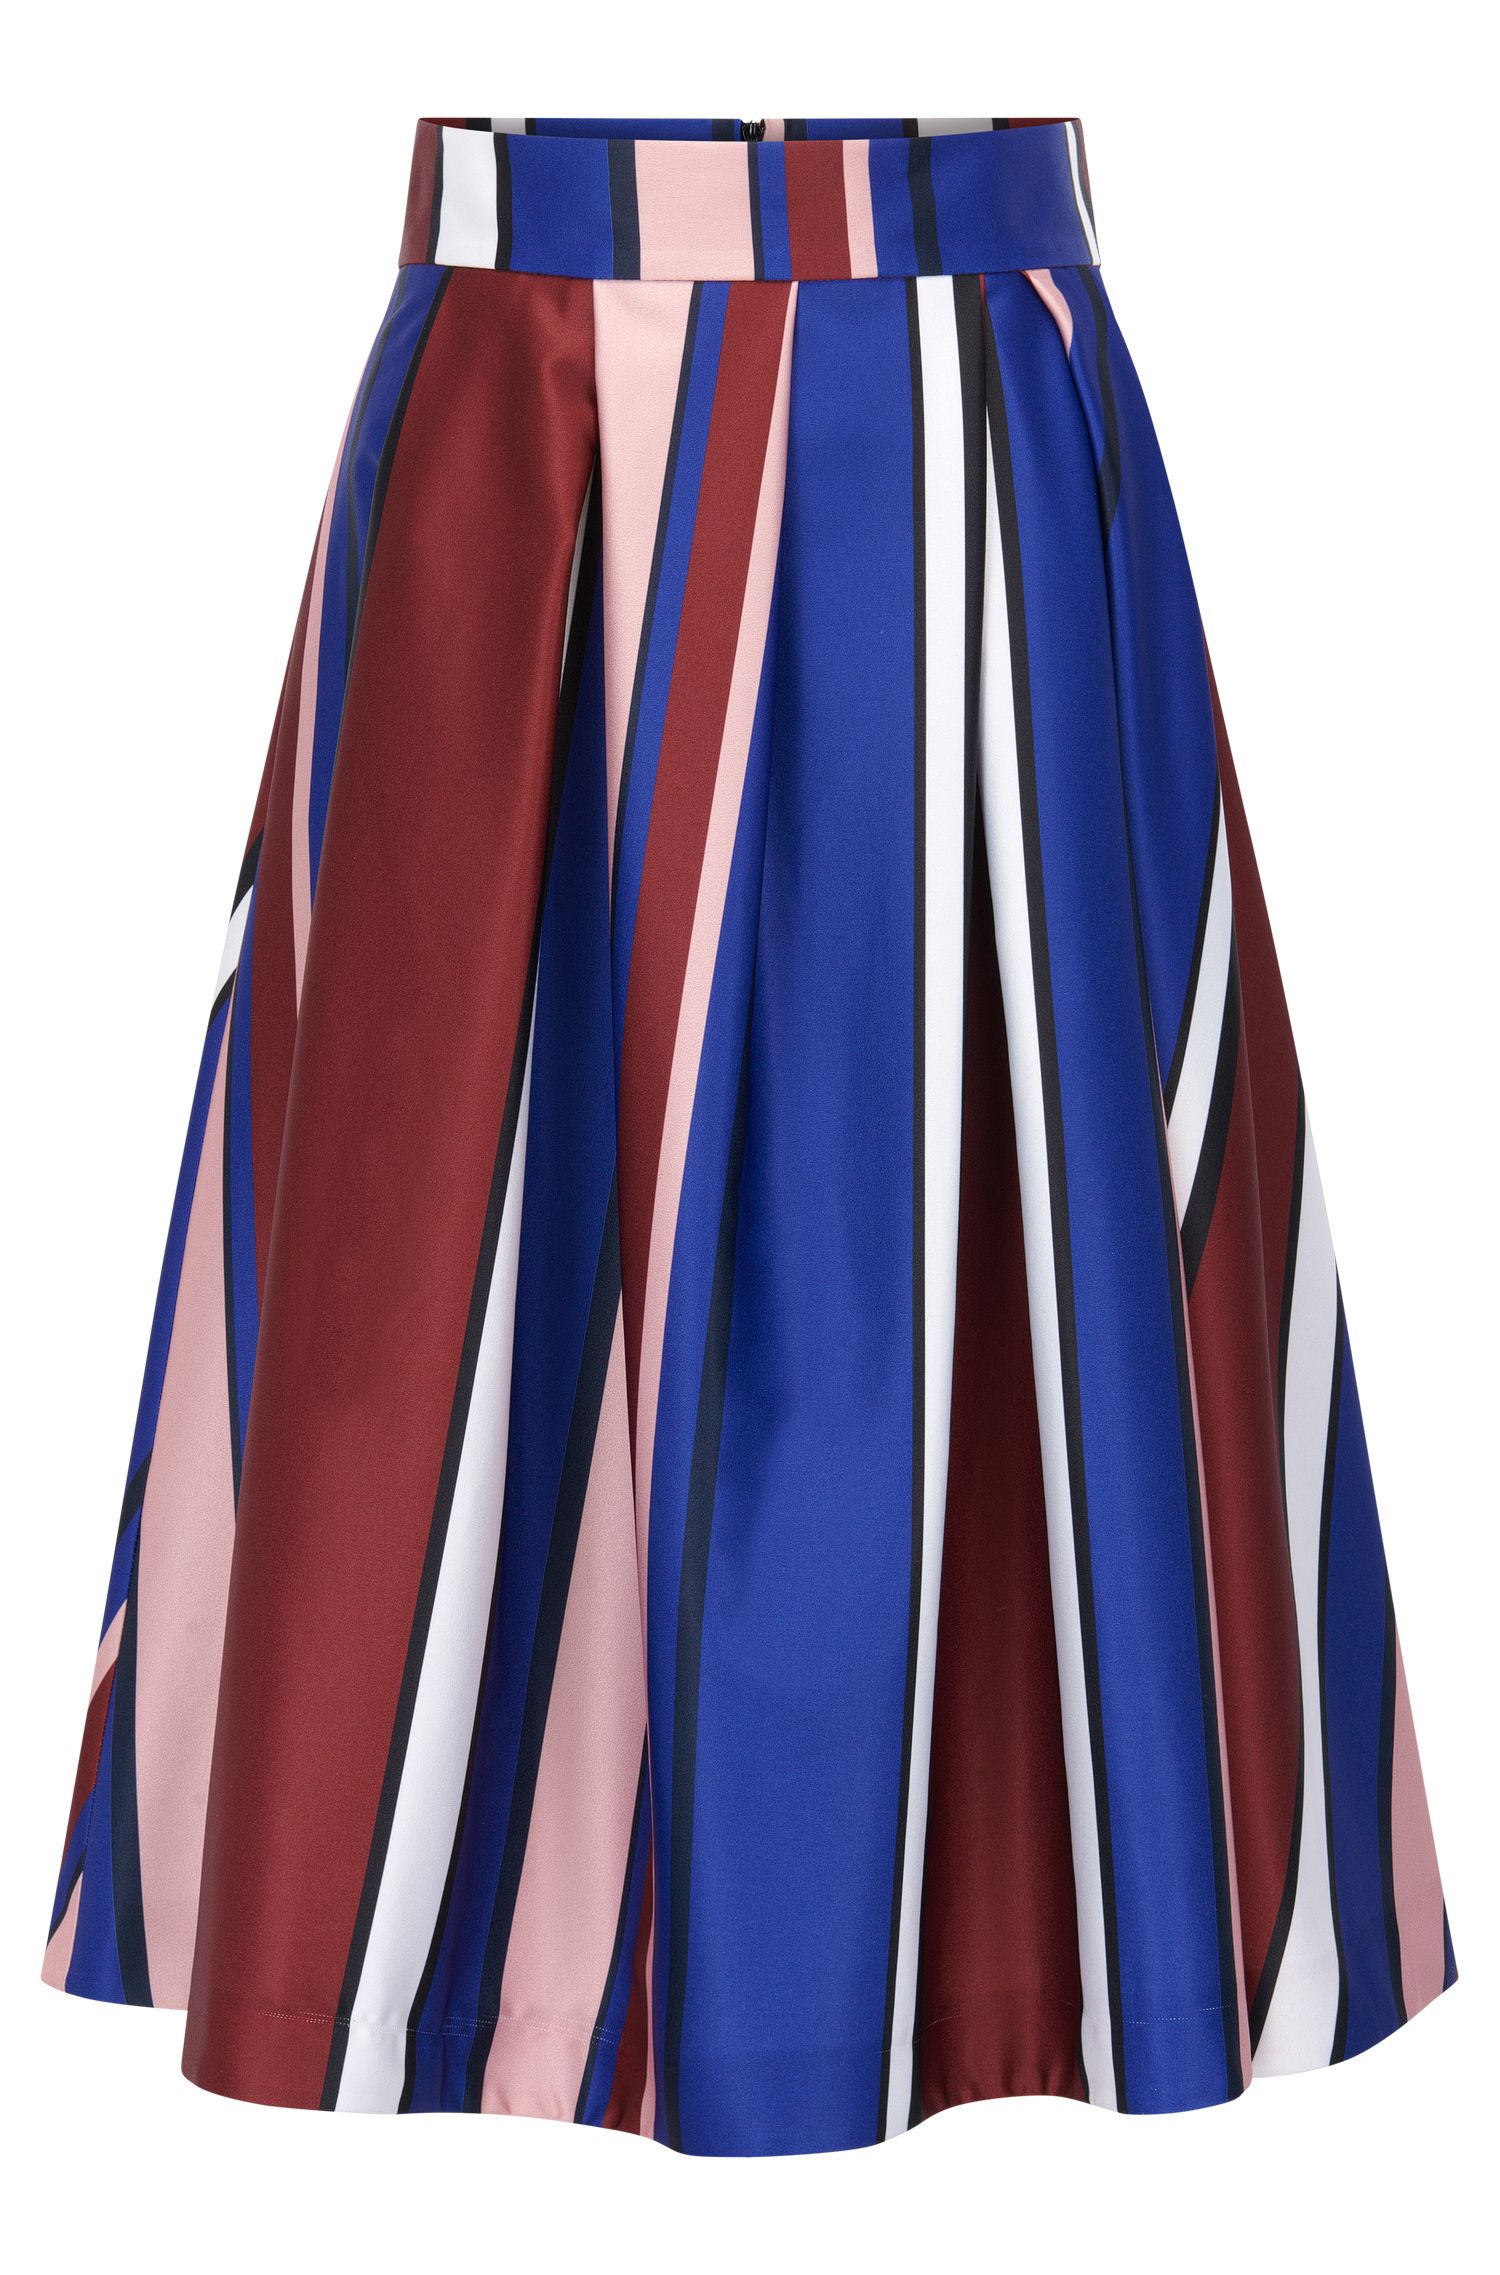 Multi-coloured striped A-line skirt in stretch fabric